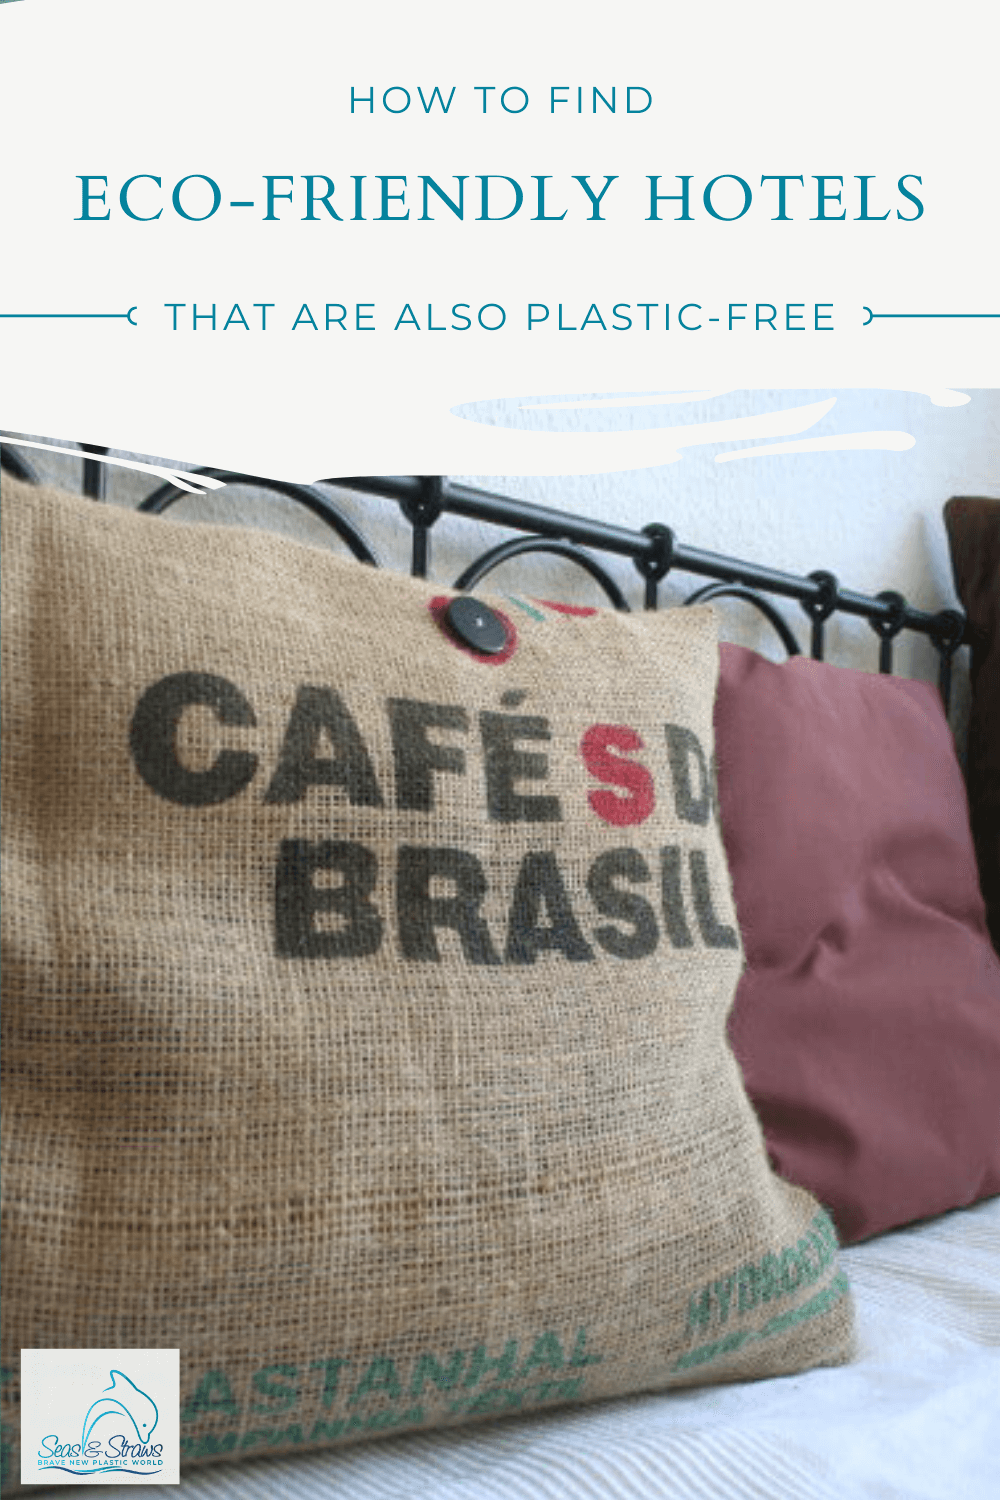 How to find eco-friendly hotels that are also plastic-free. Seas & Straws